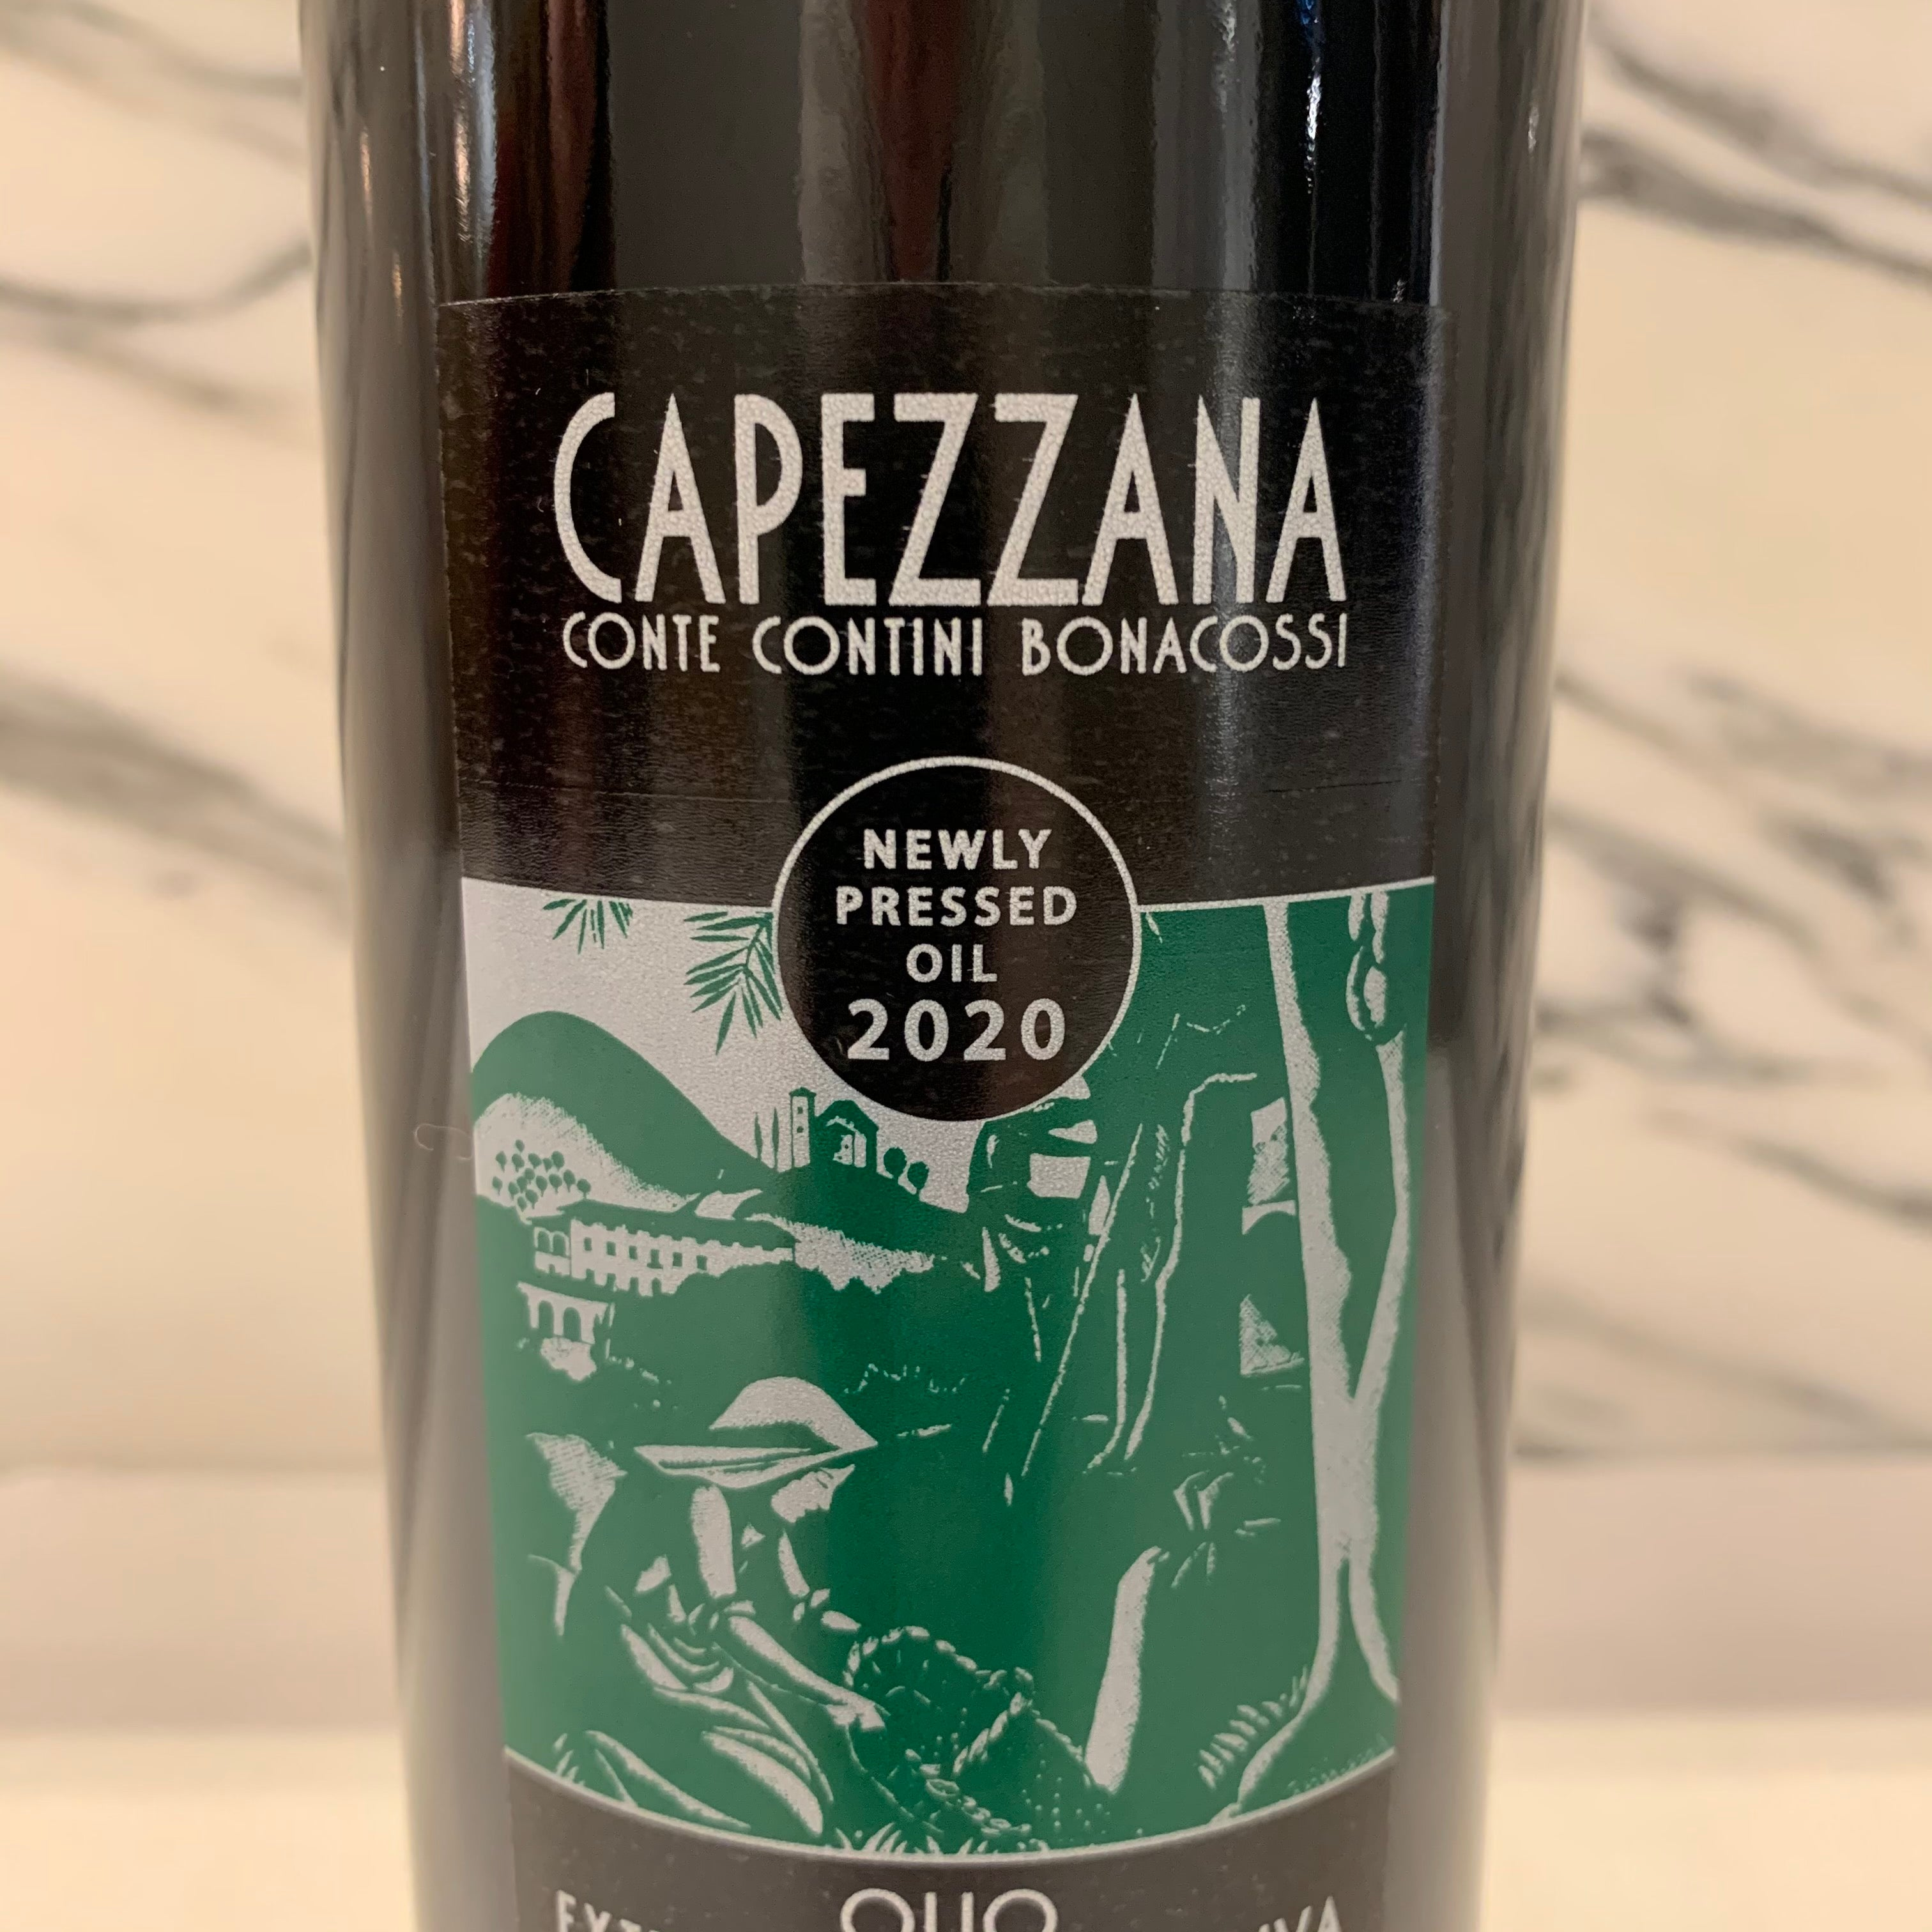 Capezzana 2020 Extra Virgin Olive Oil